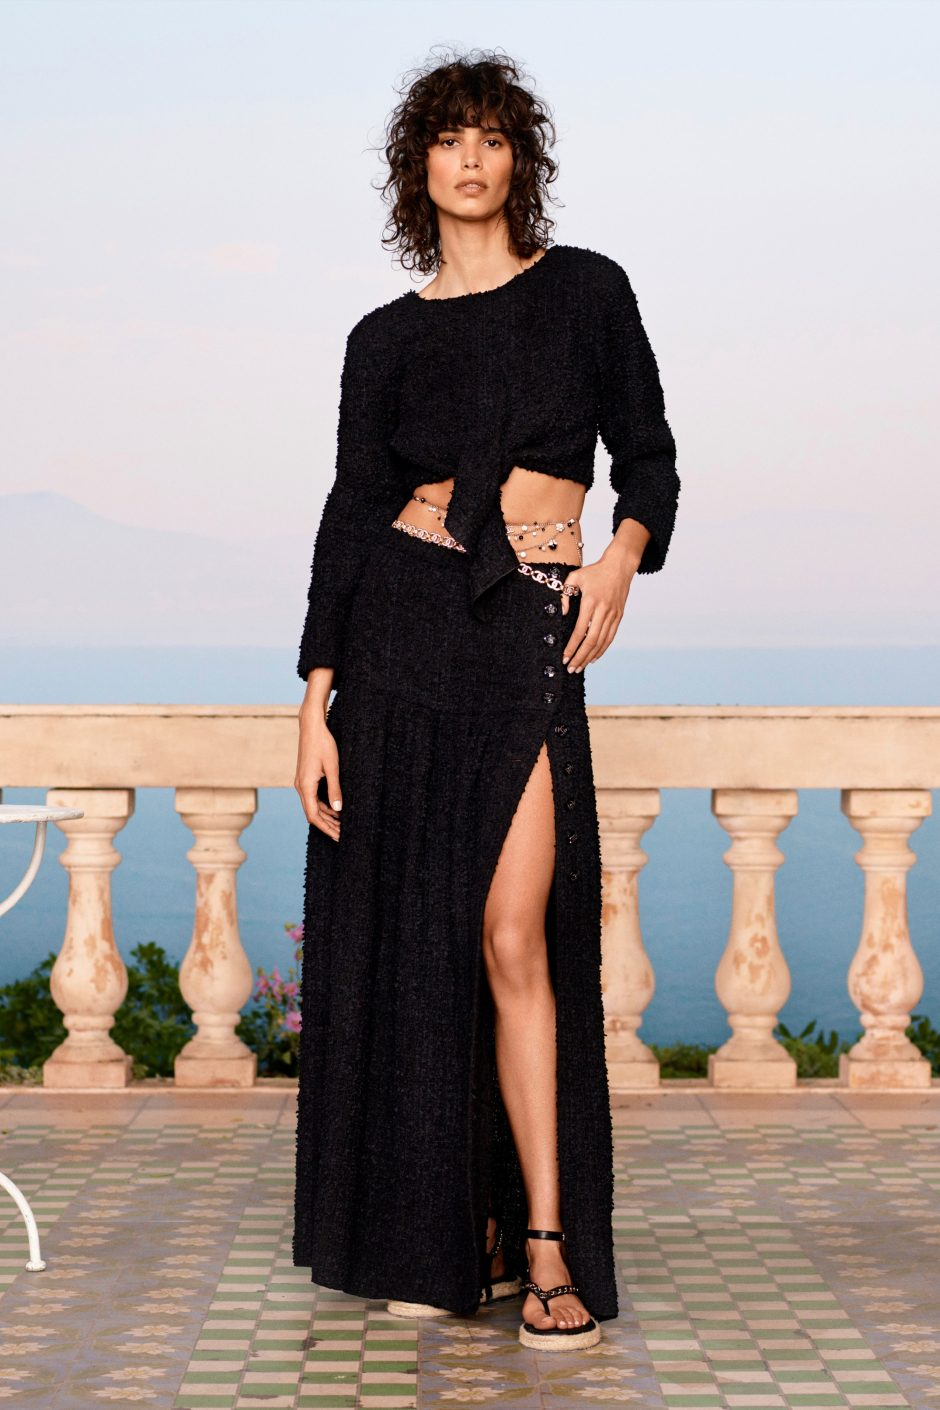 00026-Chanel-Resort-2021